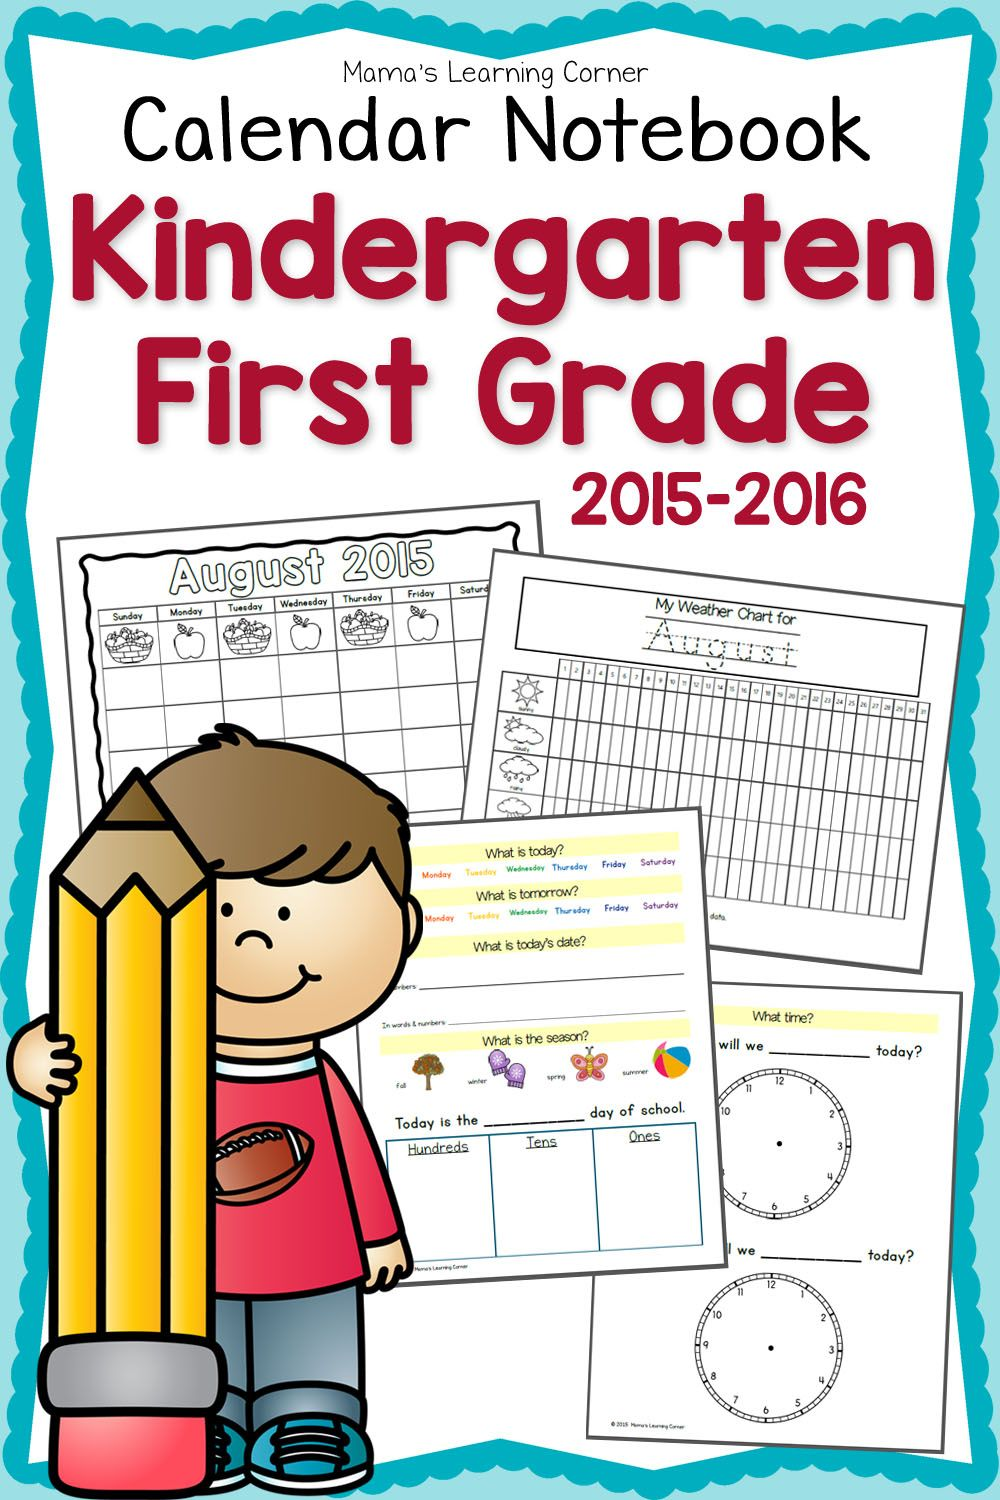 Kindergarten-first Grade Calendar Notebook | School